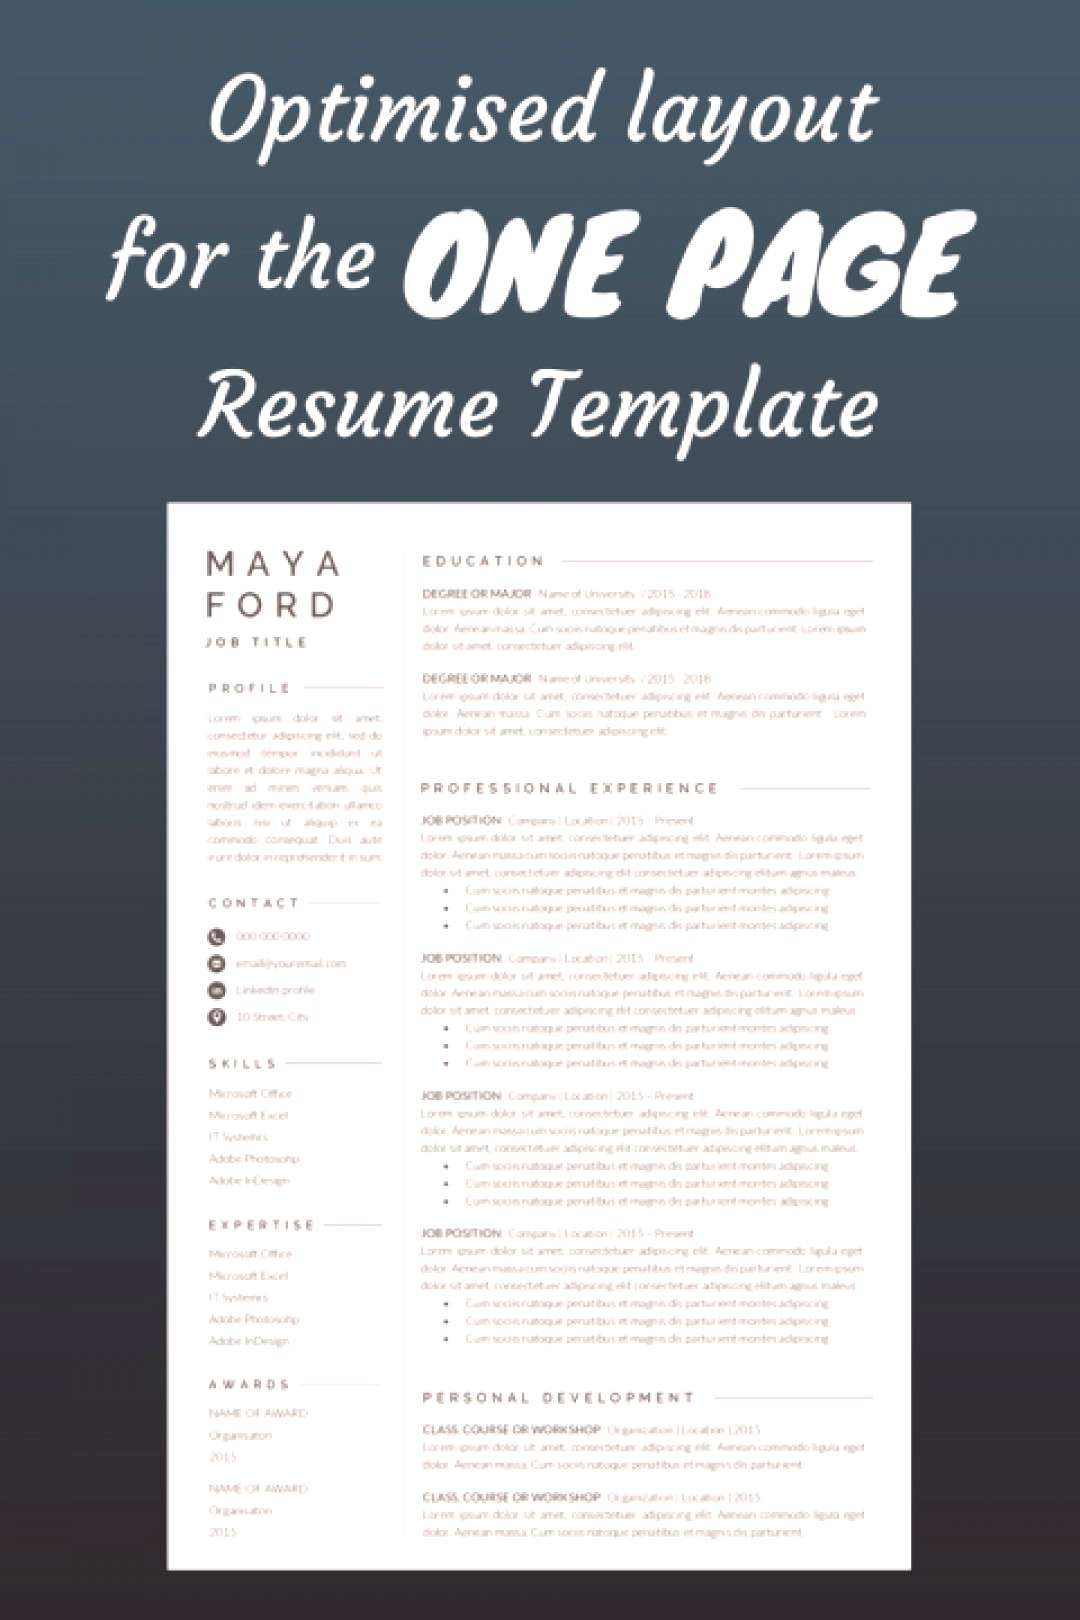 Resume Template | One page resume | Professional Resume | Modern Resume | Resume Word | CV Template